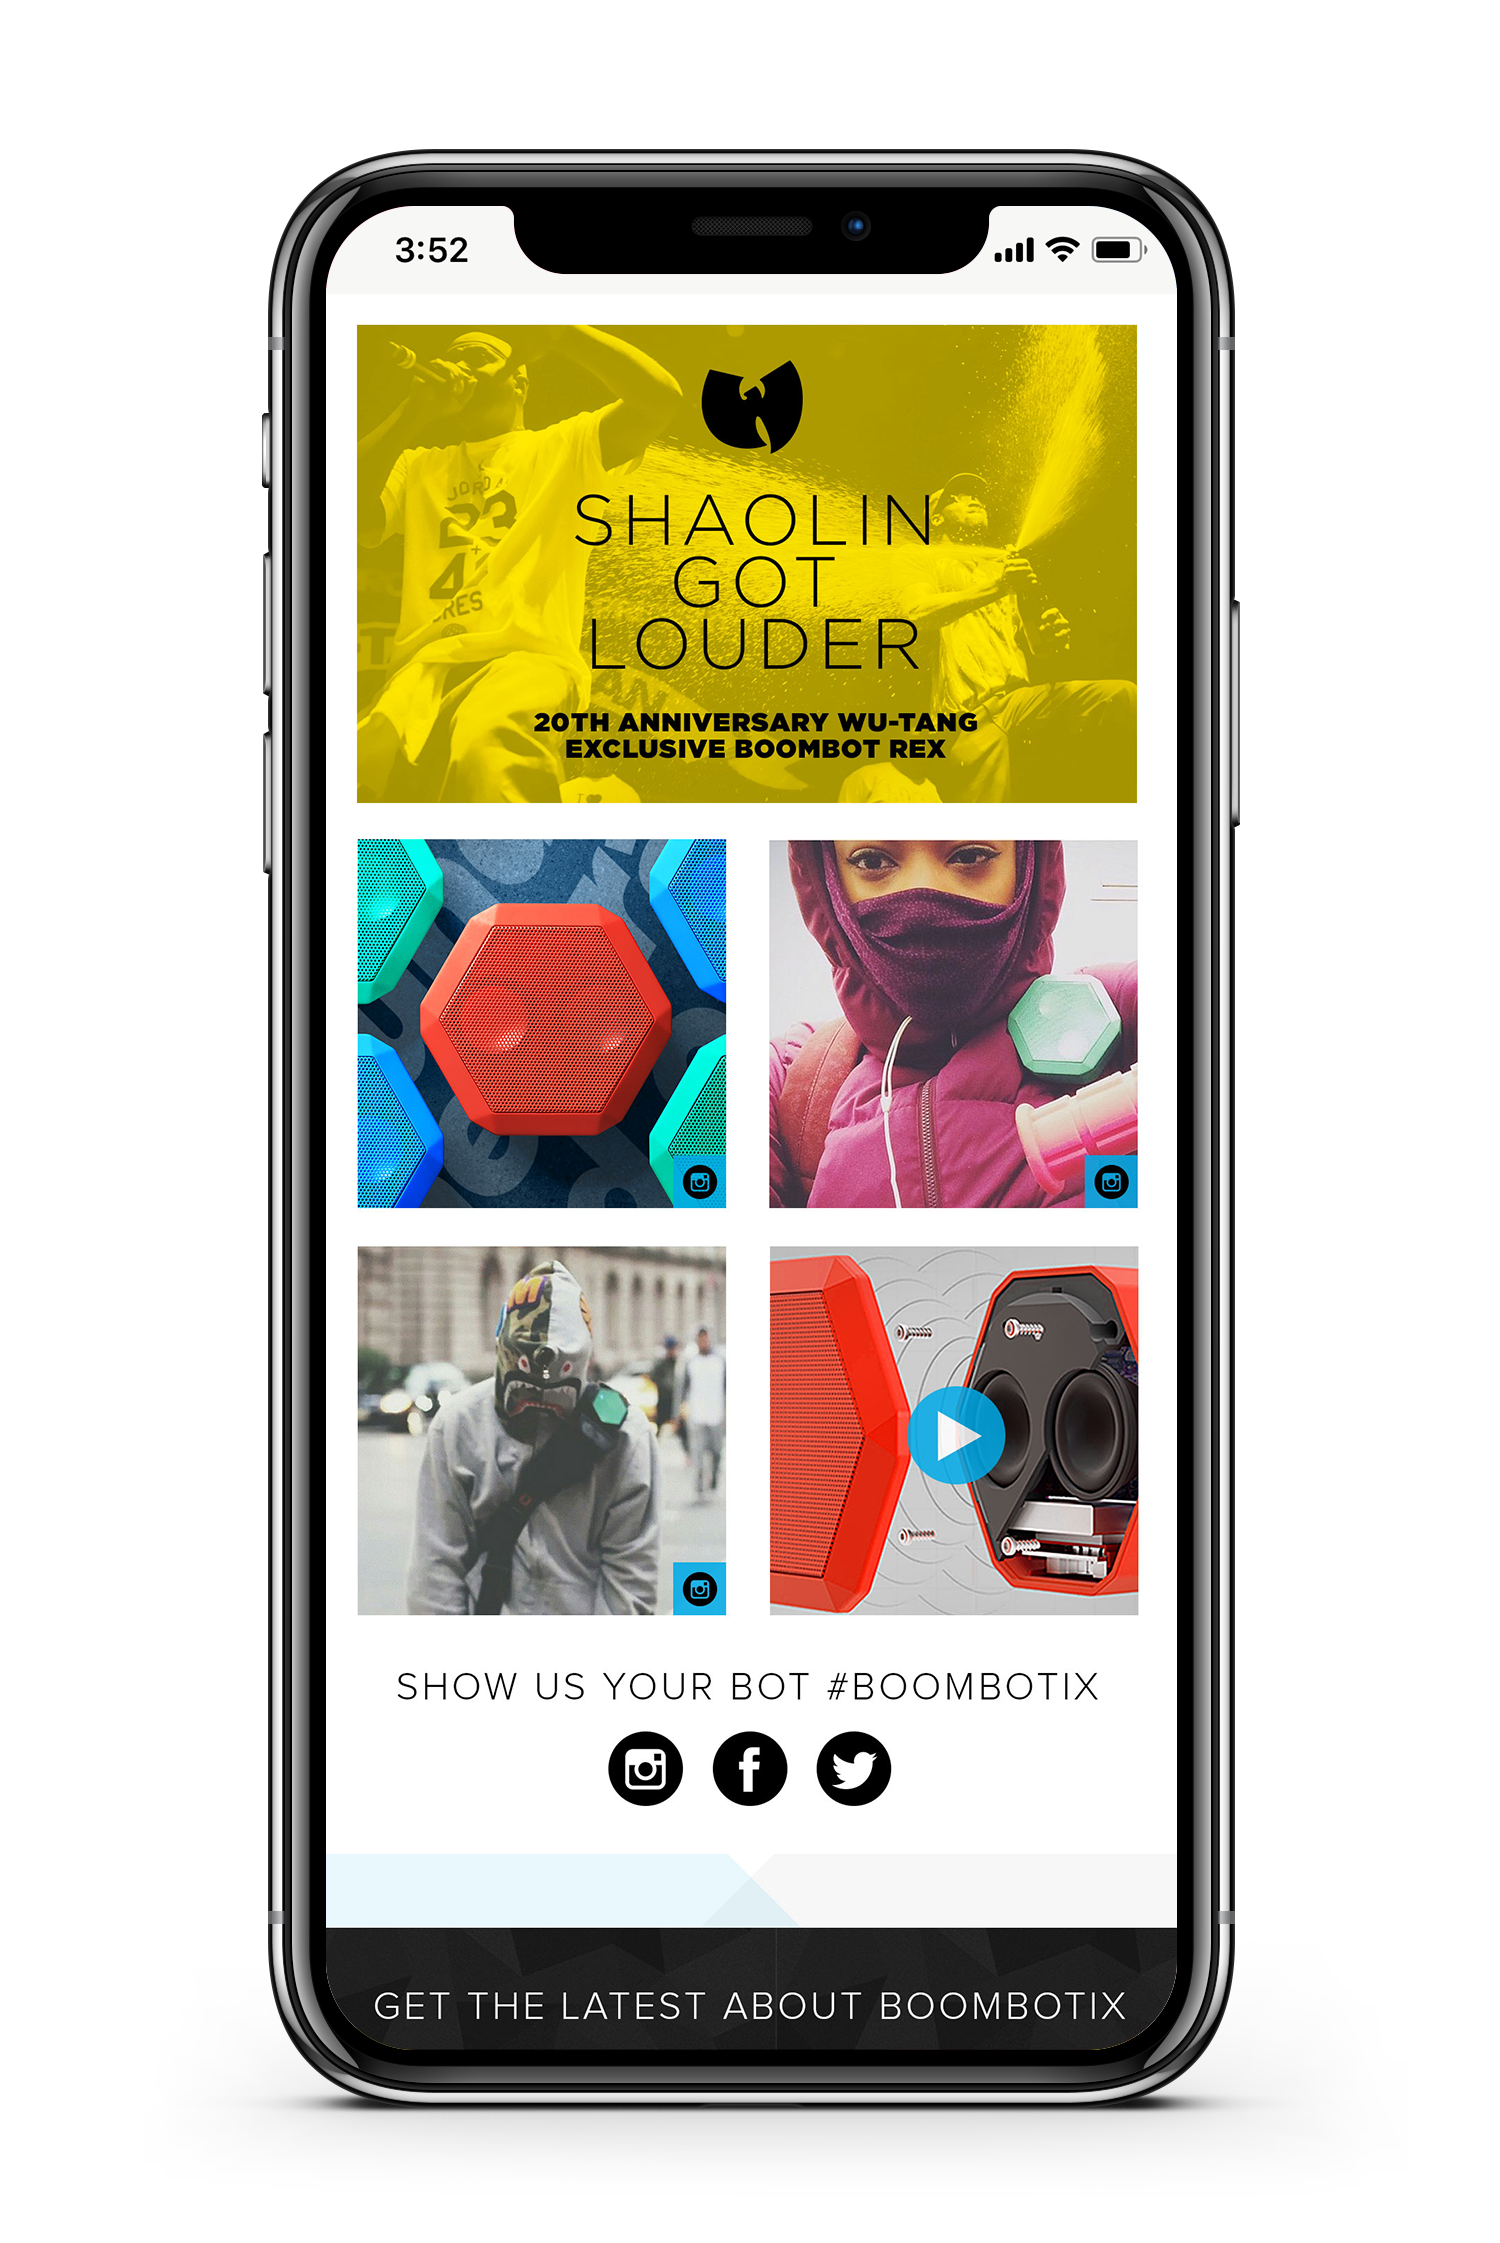 Boombotix speaker product page on website displayed on smartphone